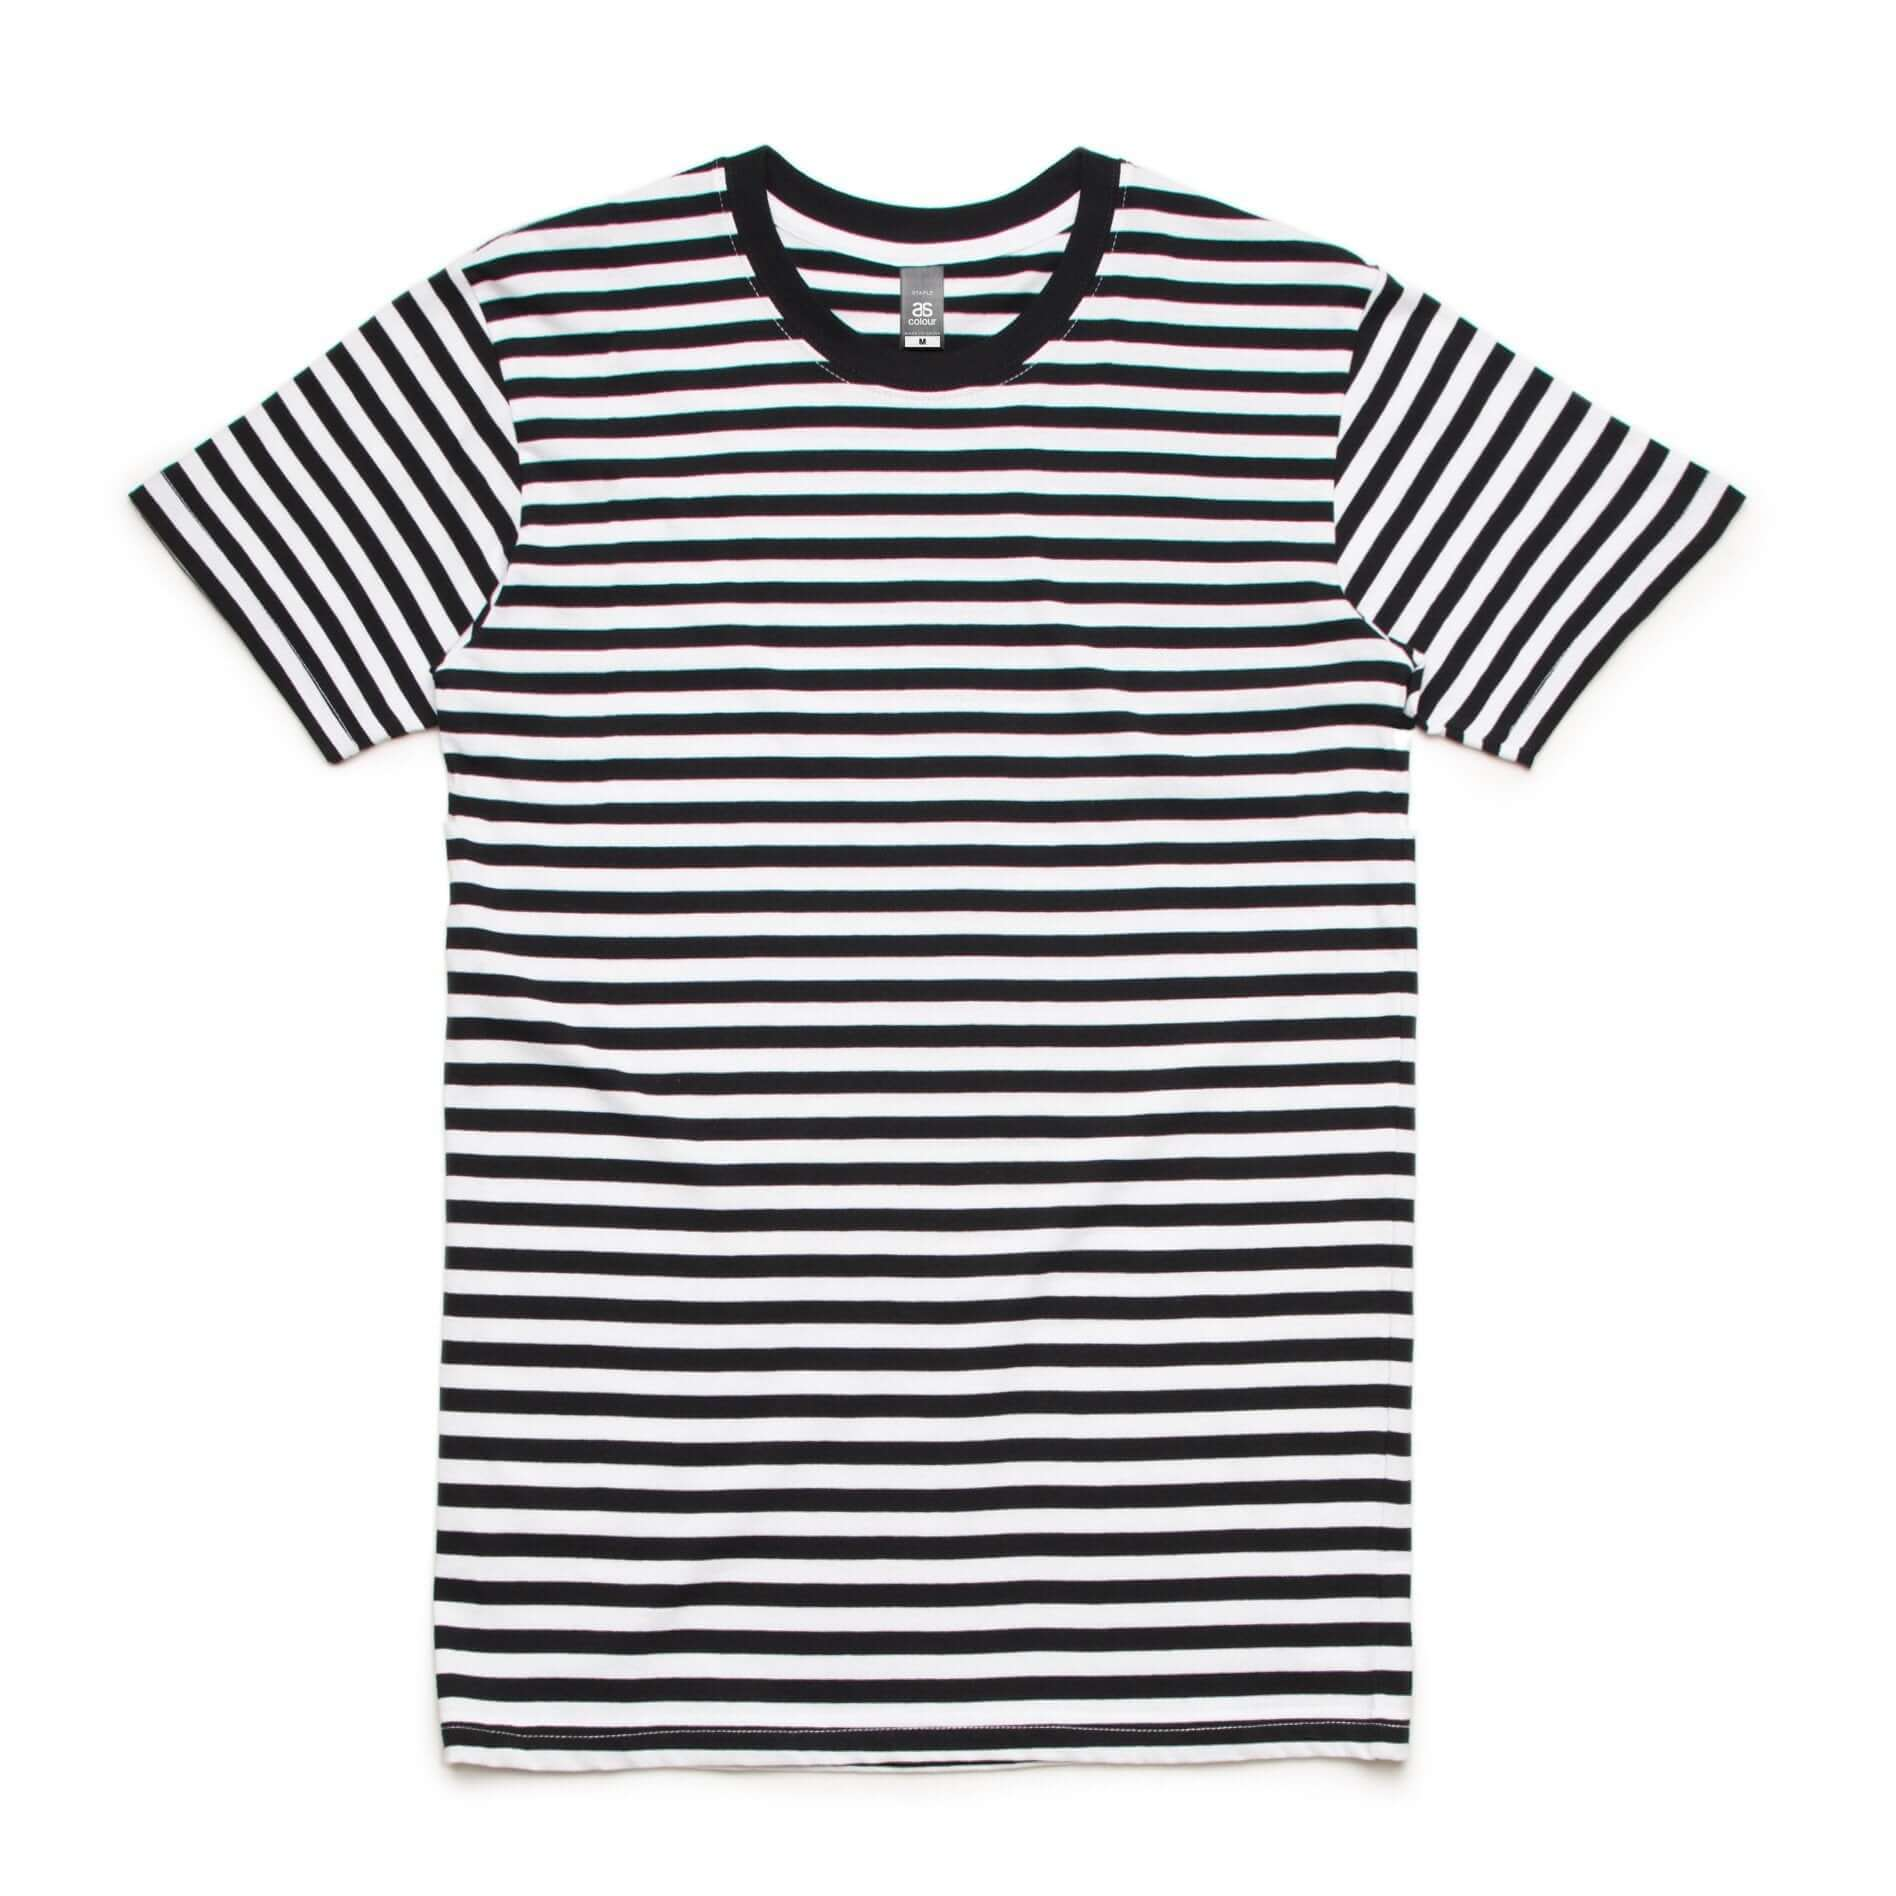 AS Colour STAPLE STRIPE TEE - Black/White